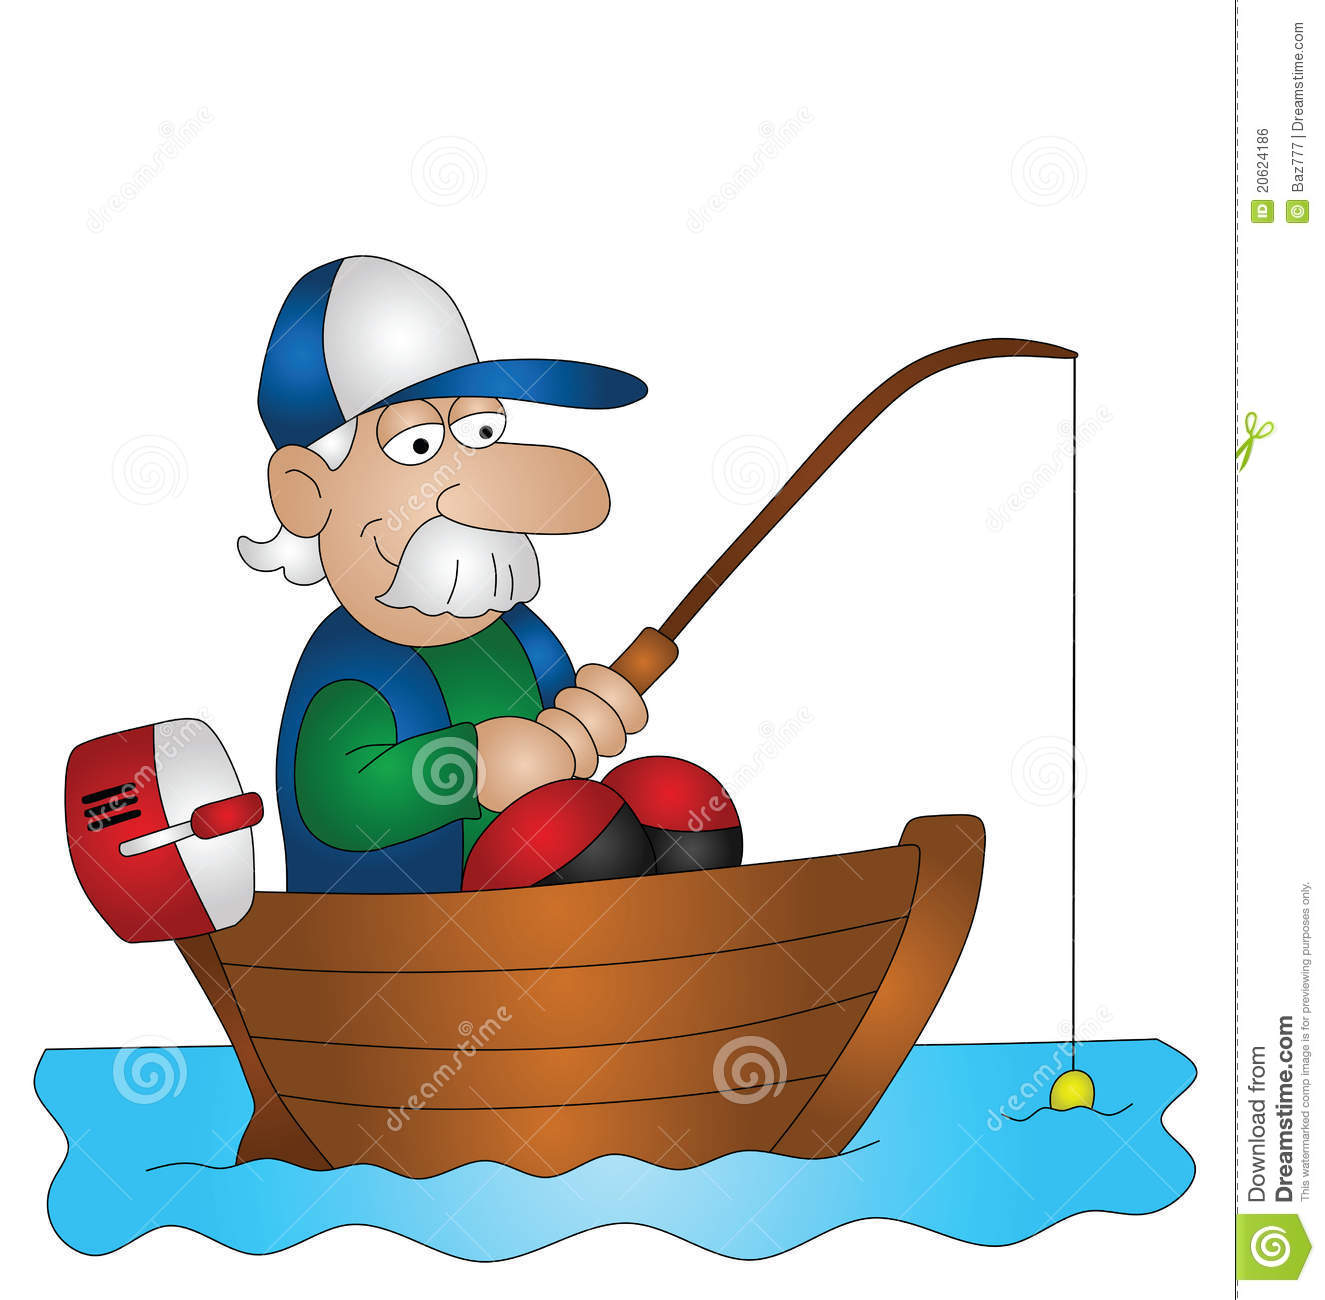 Cartoon angler fishing from boat isolated on white background.